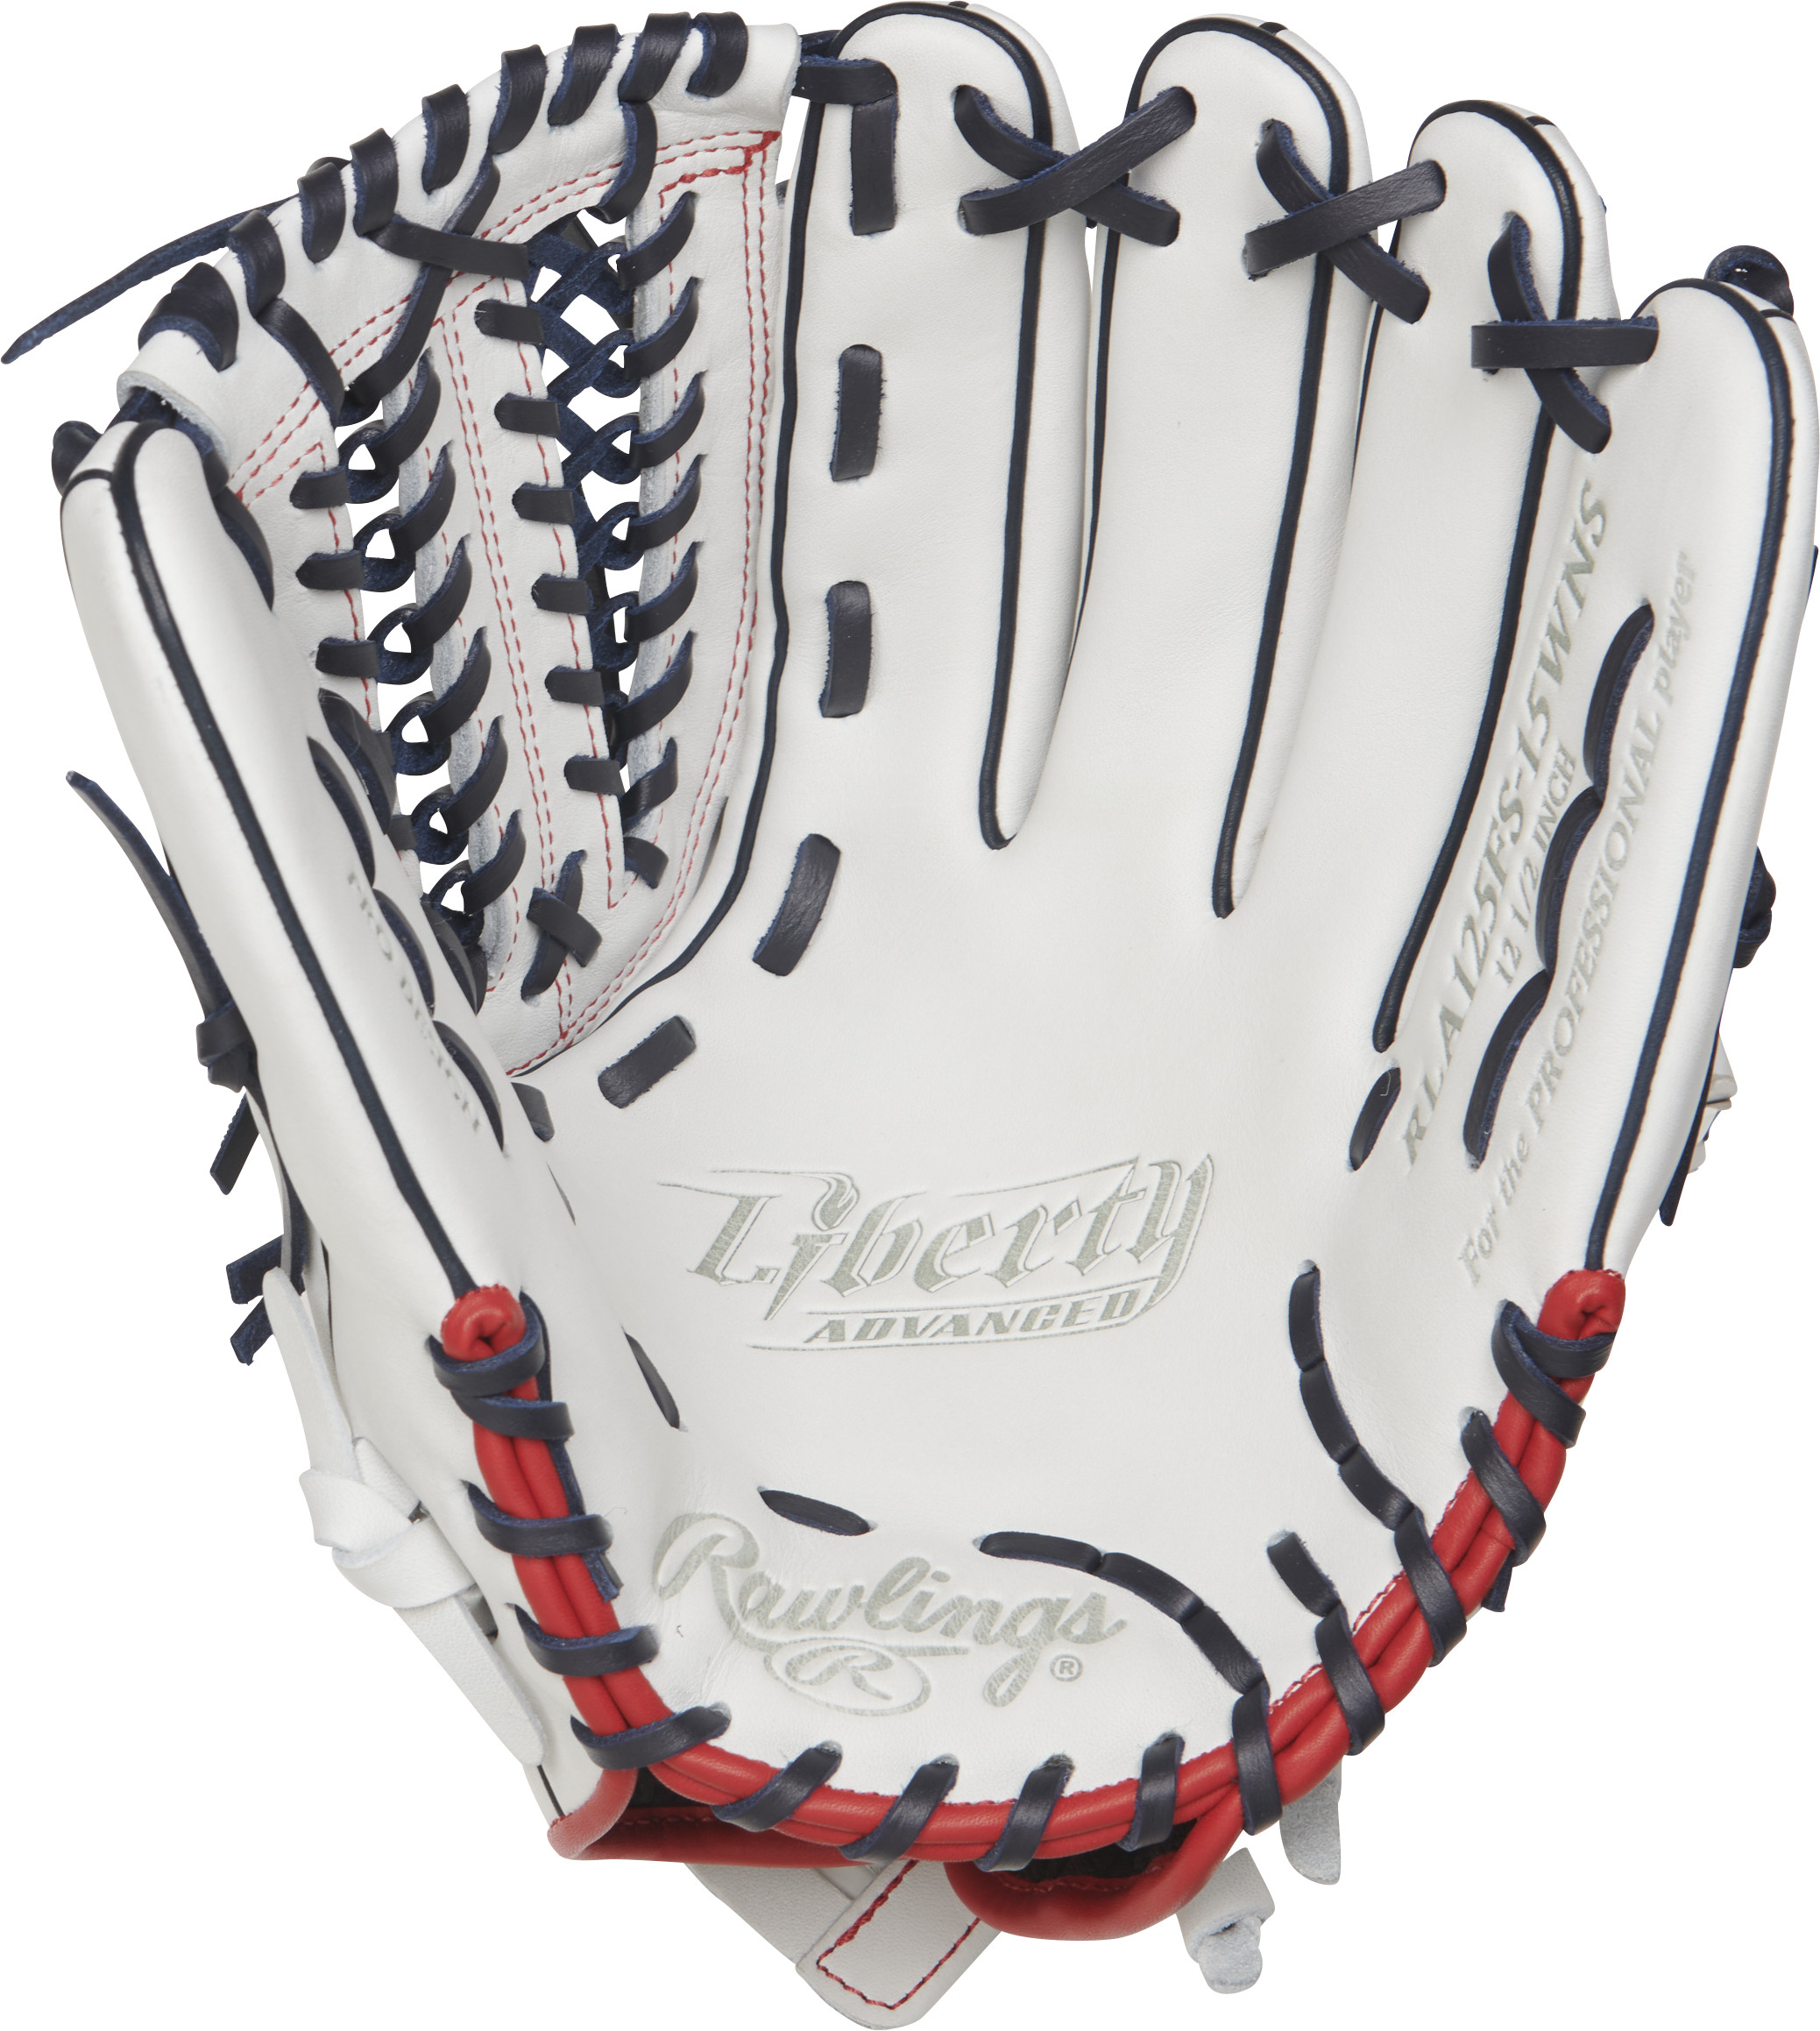 http://www.bestbatdeals.com/images/gloves/rawlings/RLA125FS-15WNS-1.jpg